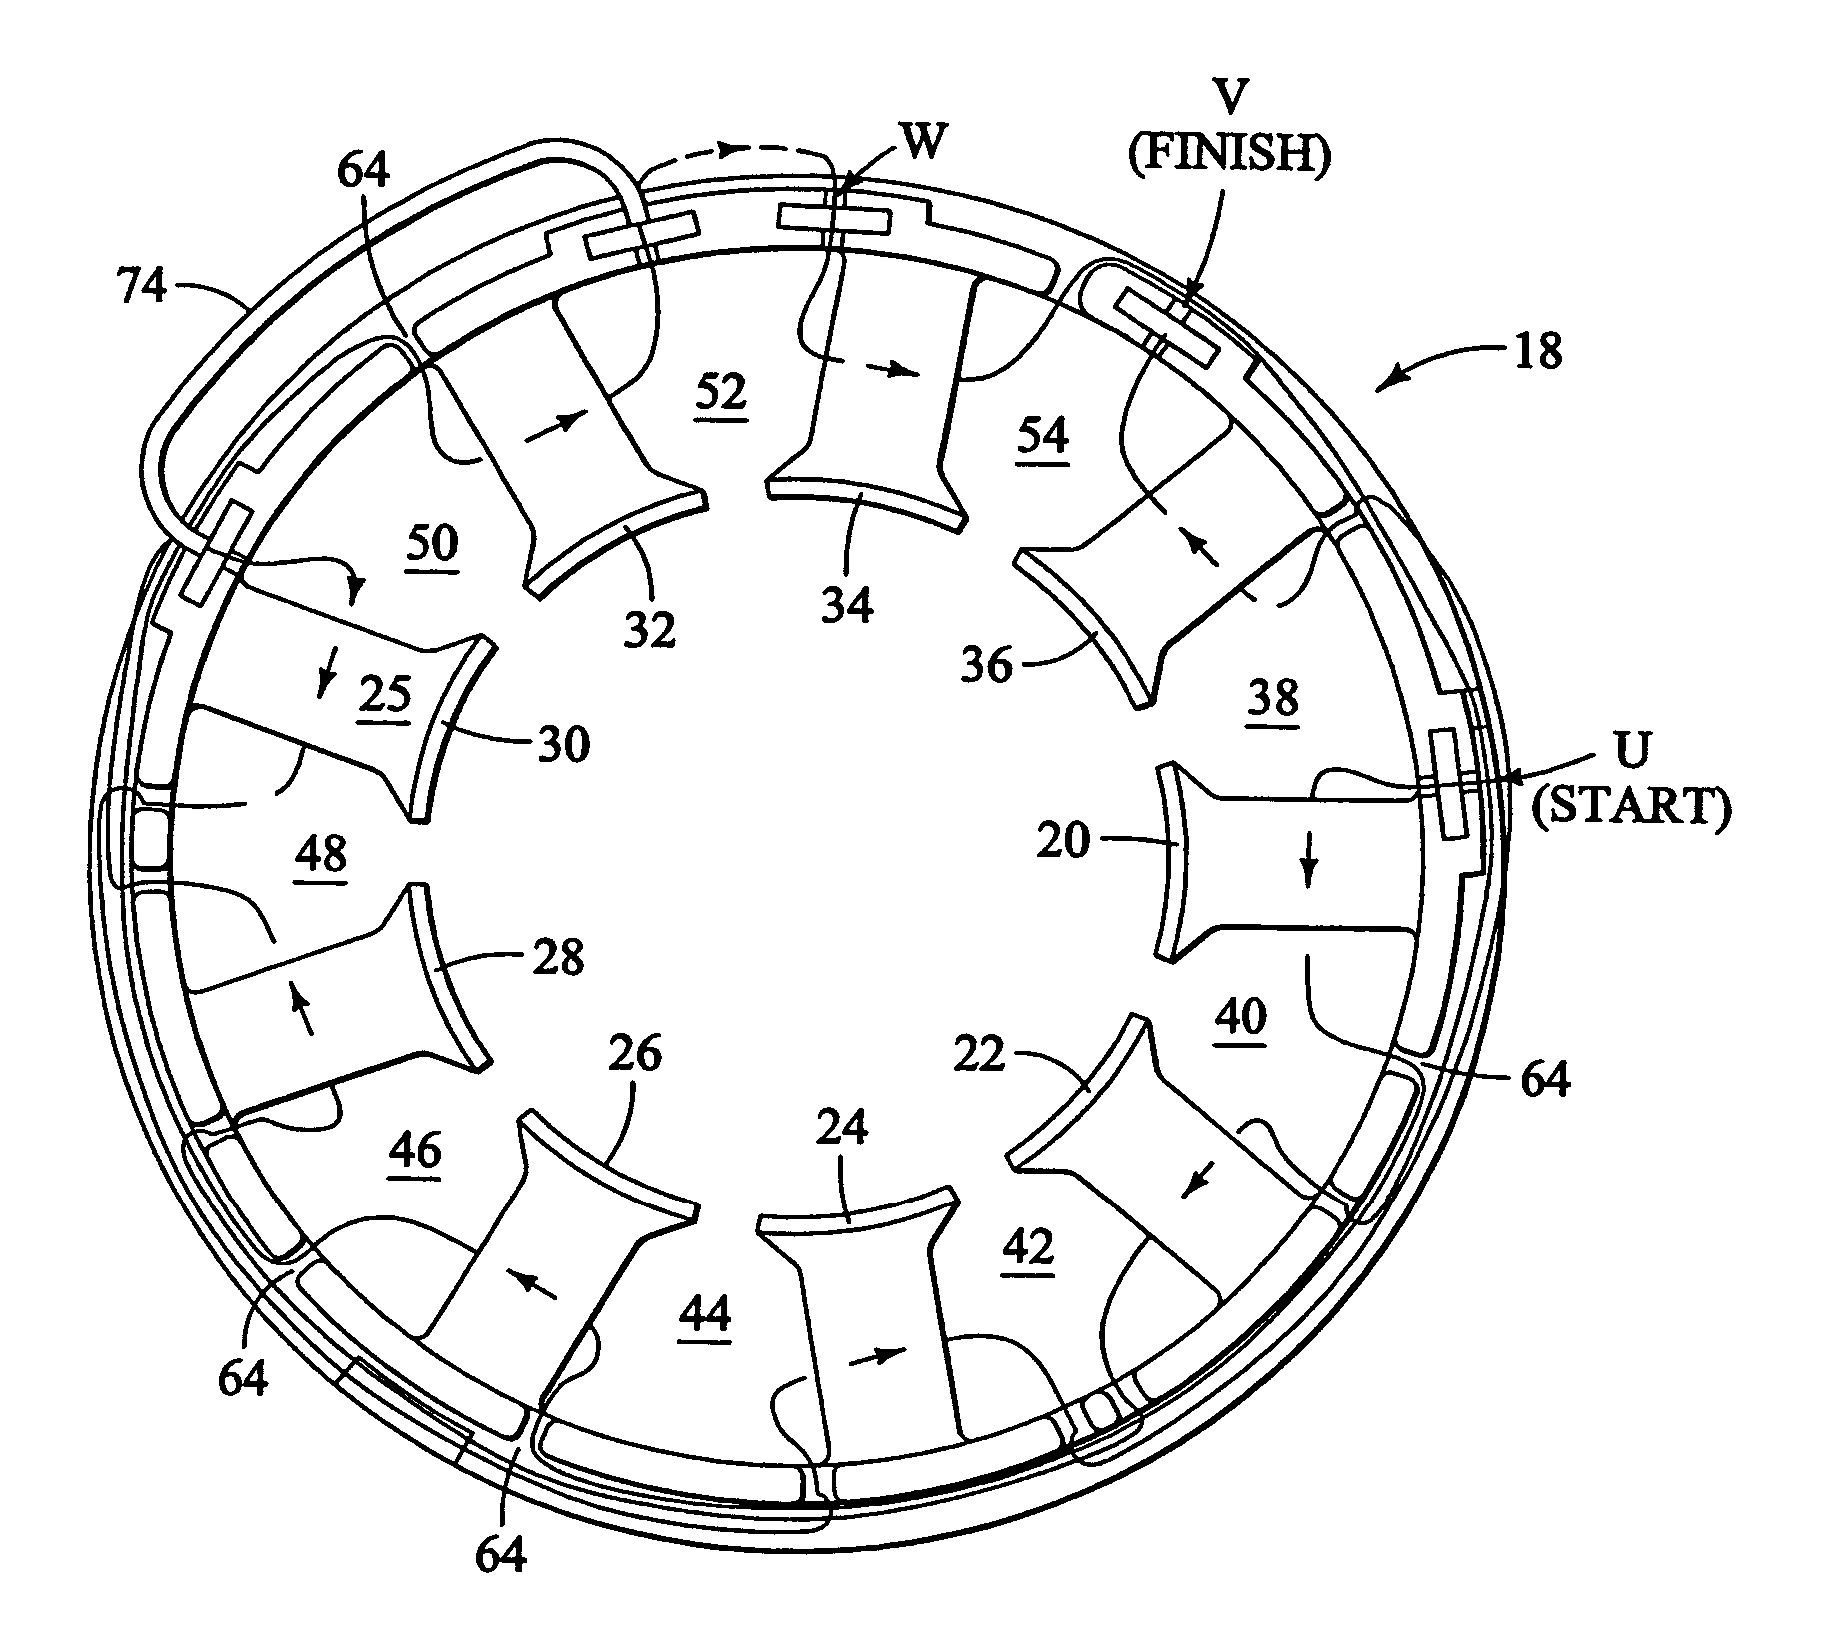 Patent Us7152301 - Method For Winding A Stator Of Multi-phase Motors